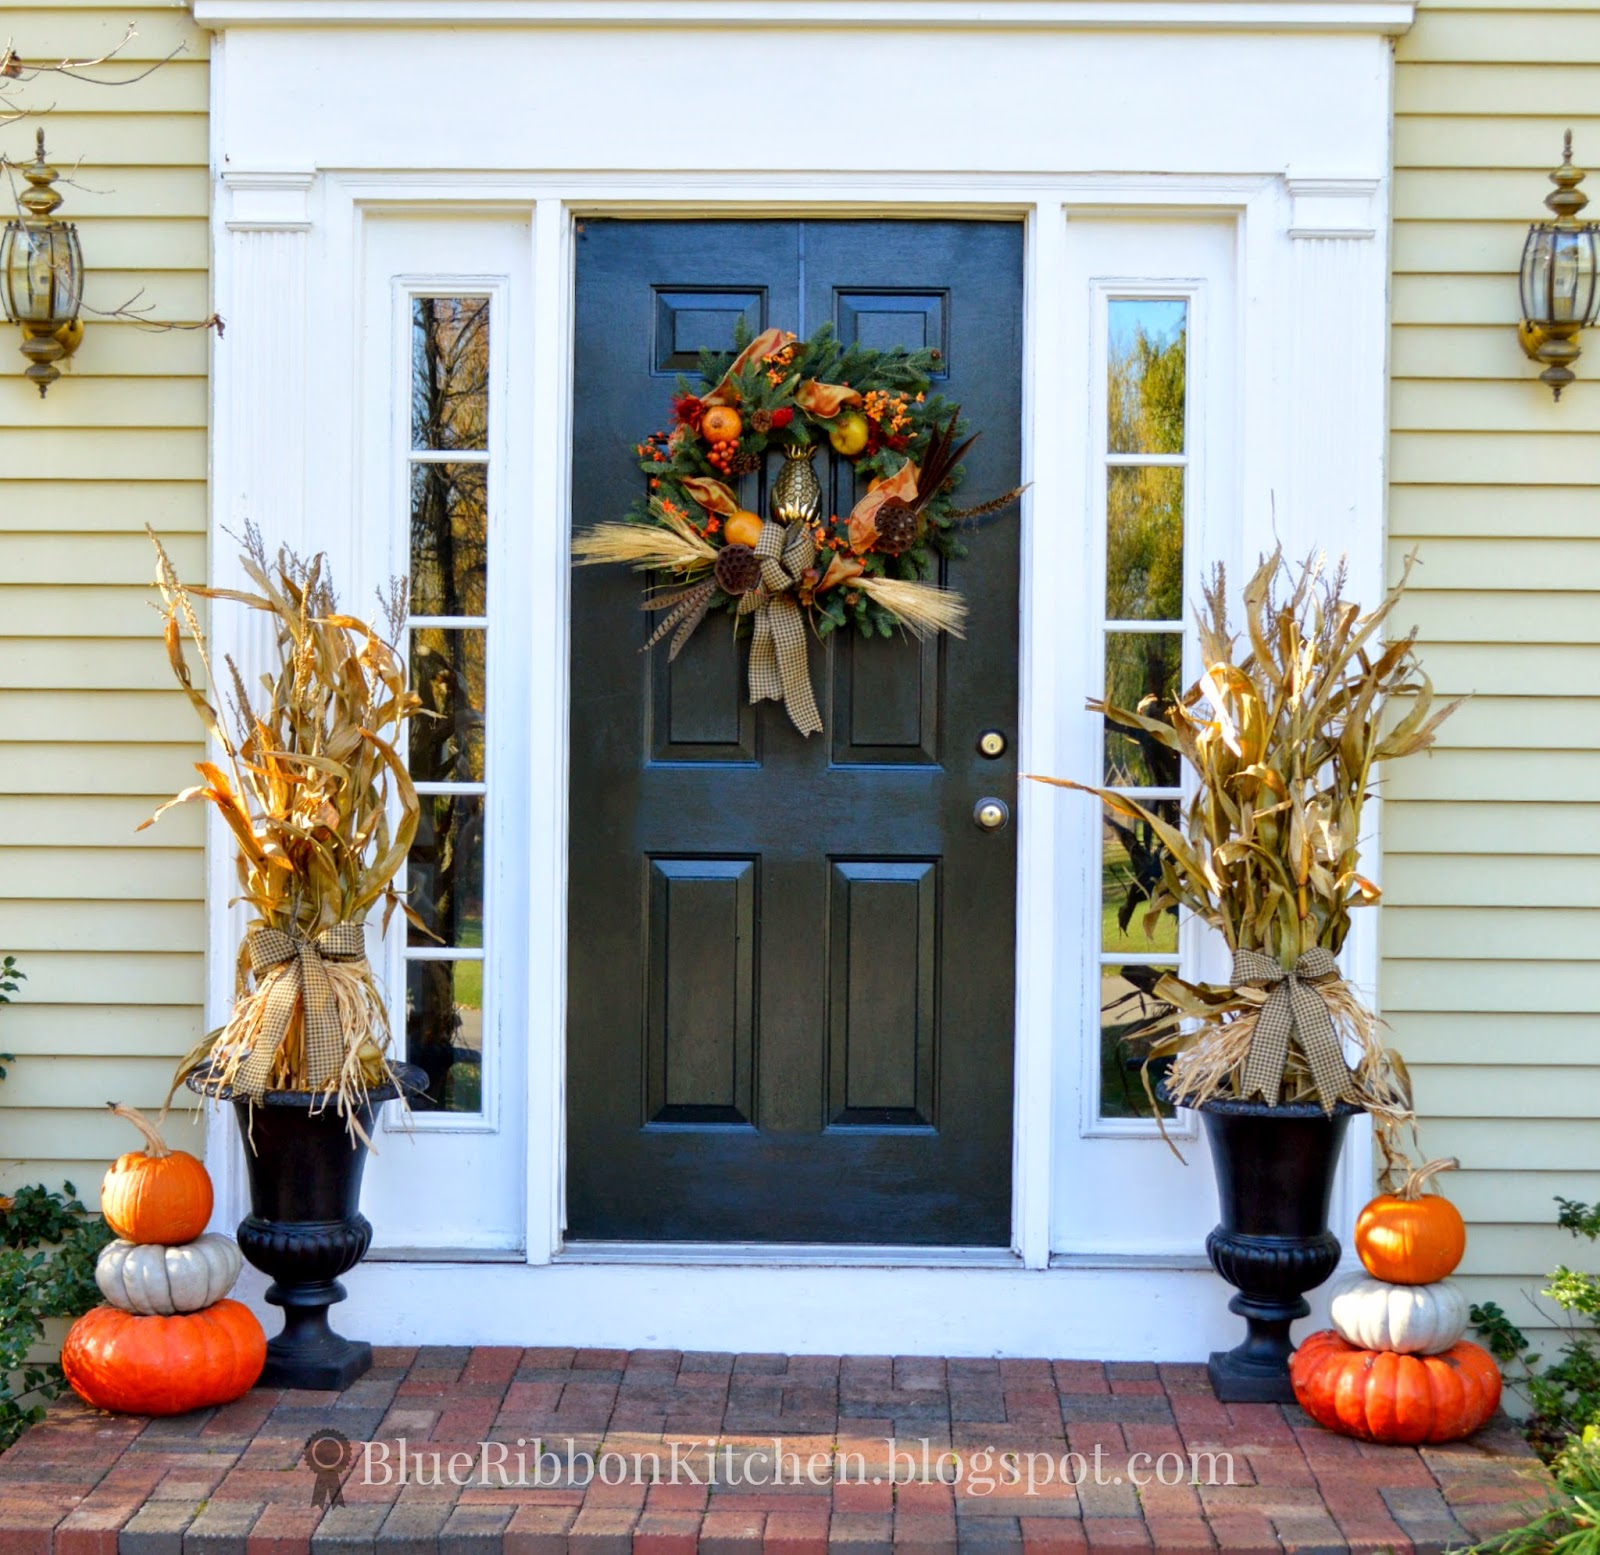 Thanksgiving front door decorations - In The Spirit Of Using What I Already Had On Hand I Recycled If You Can Somehow Transform Your Halloween Decor Into Harvest That Is A Win